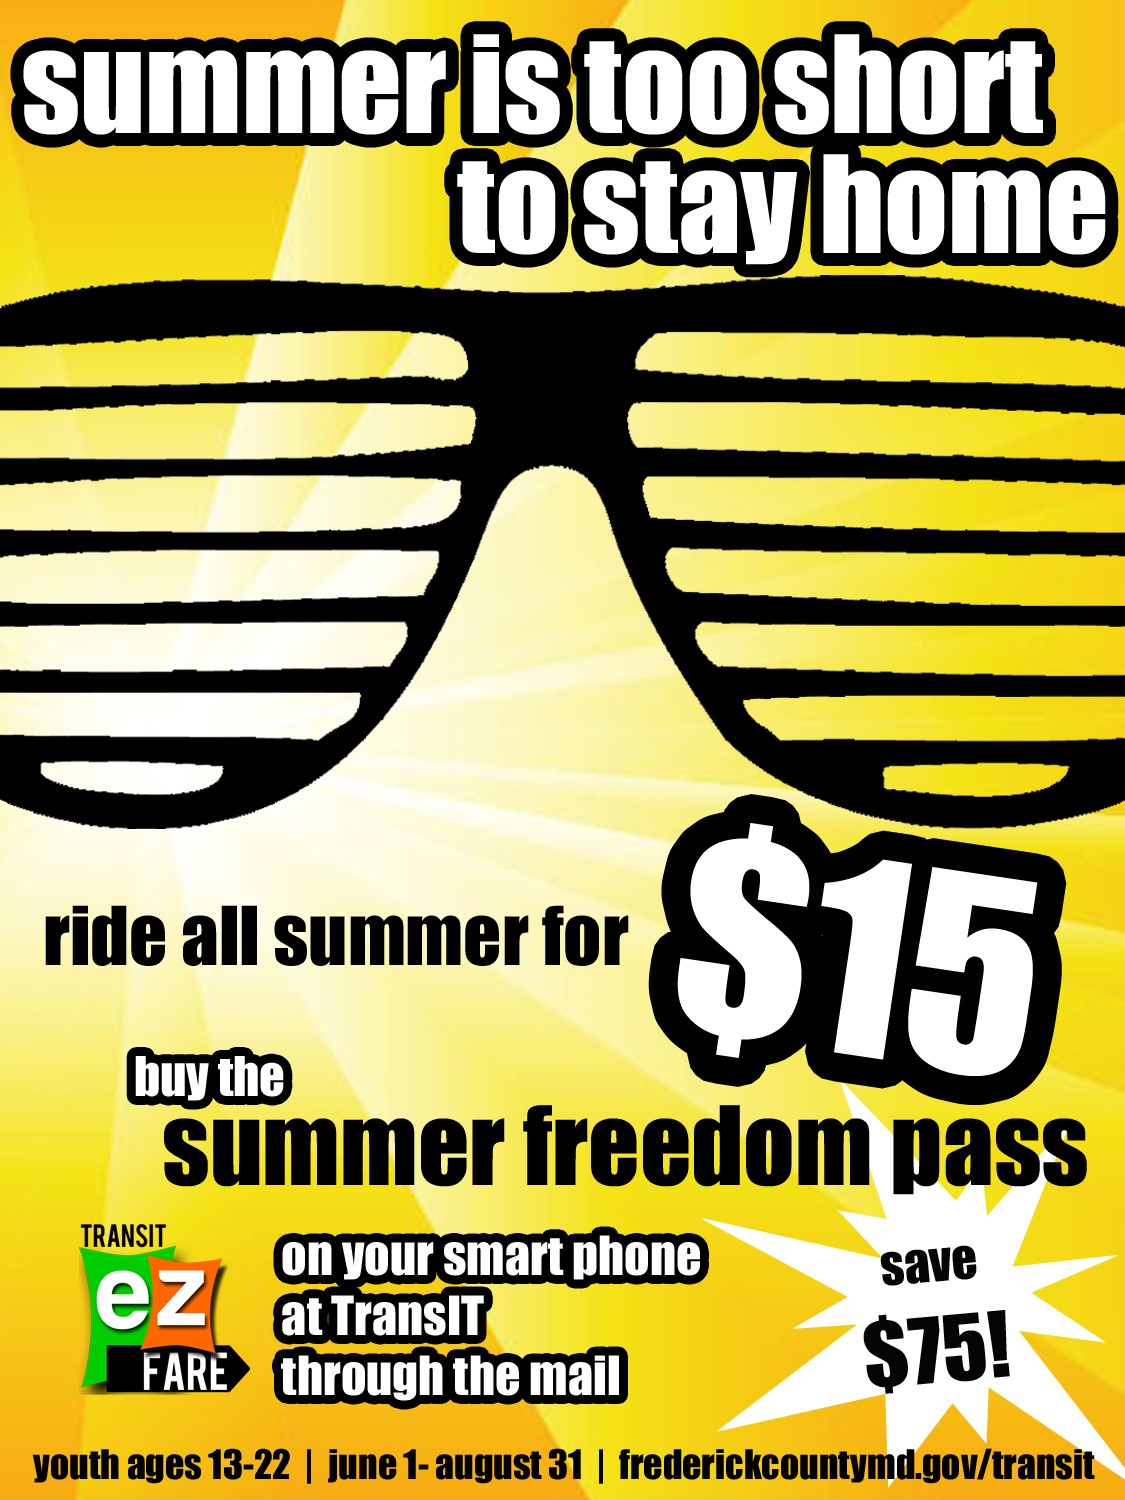 Summer Freedom Pass Available June 1 - August 31!